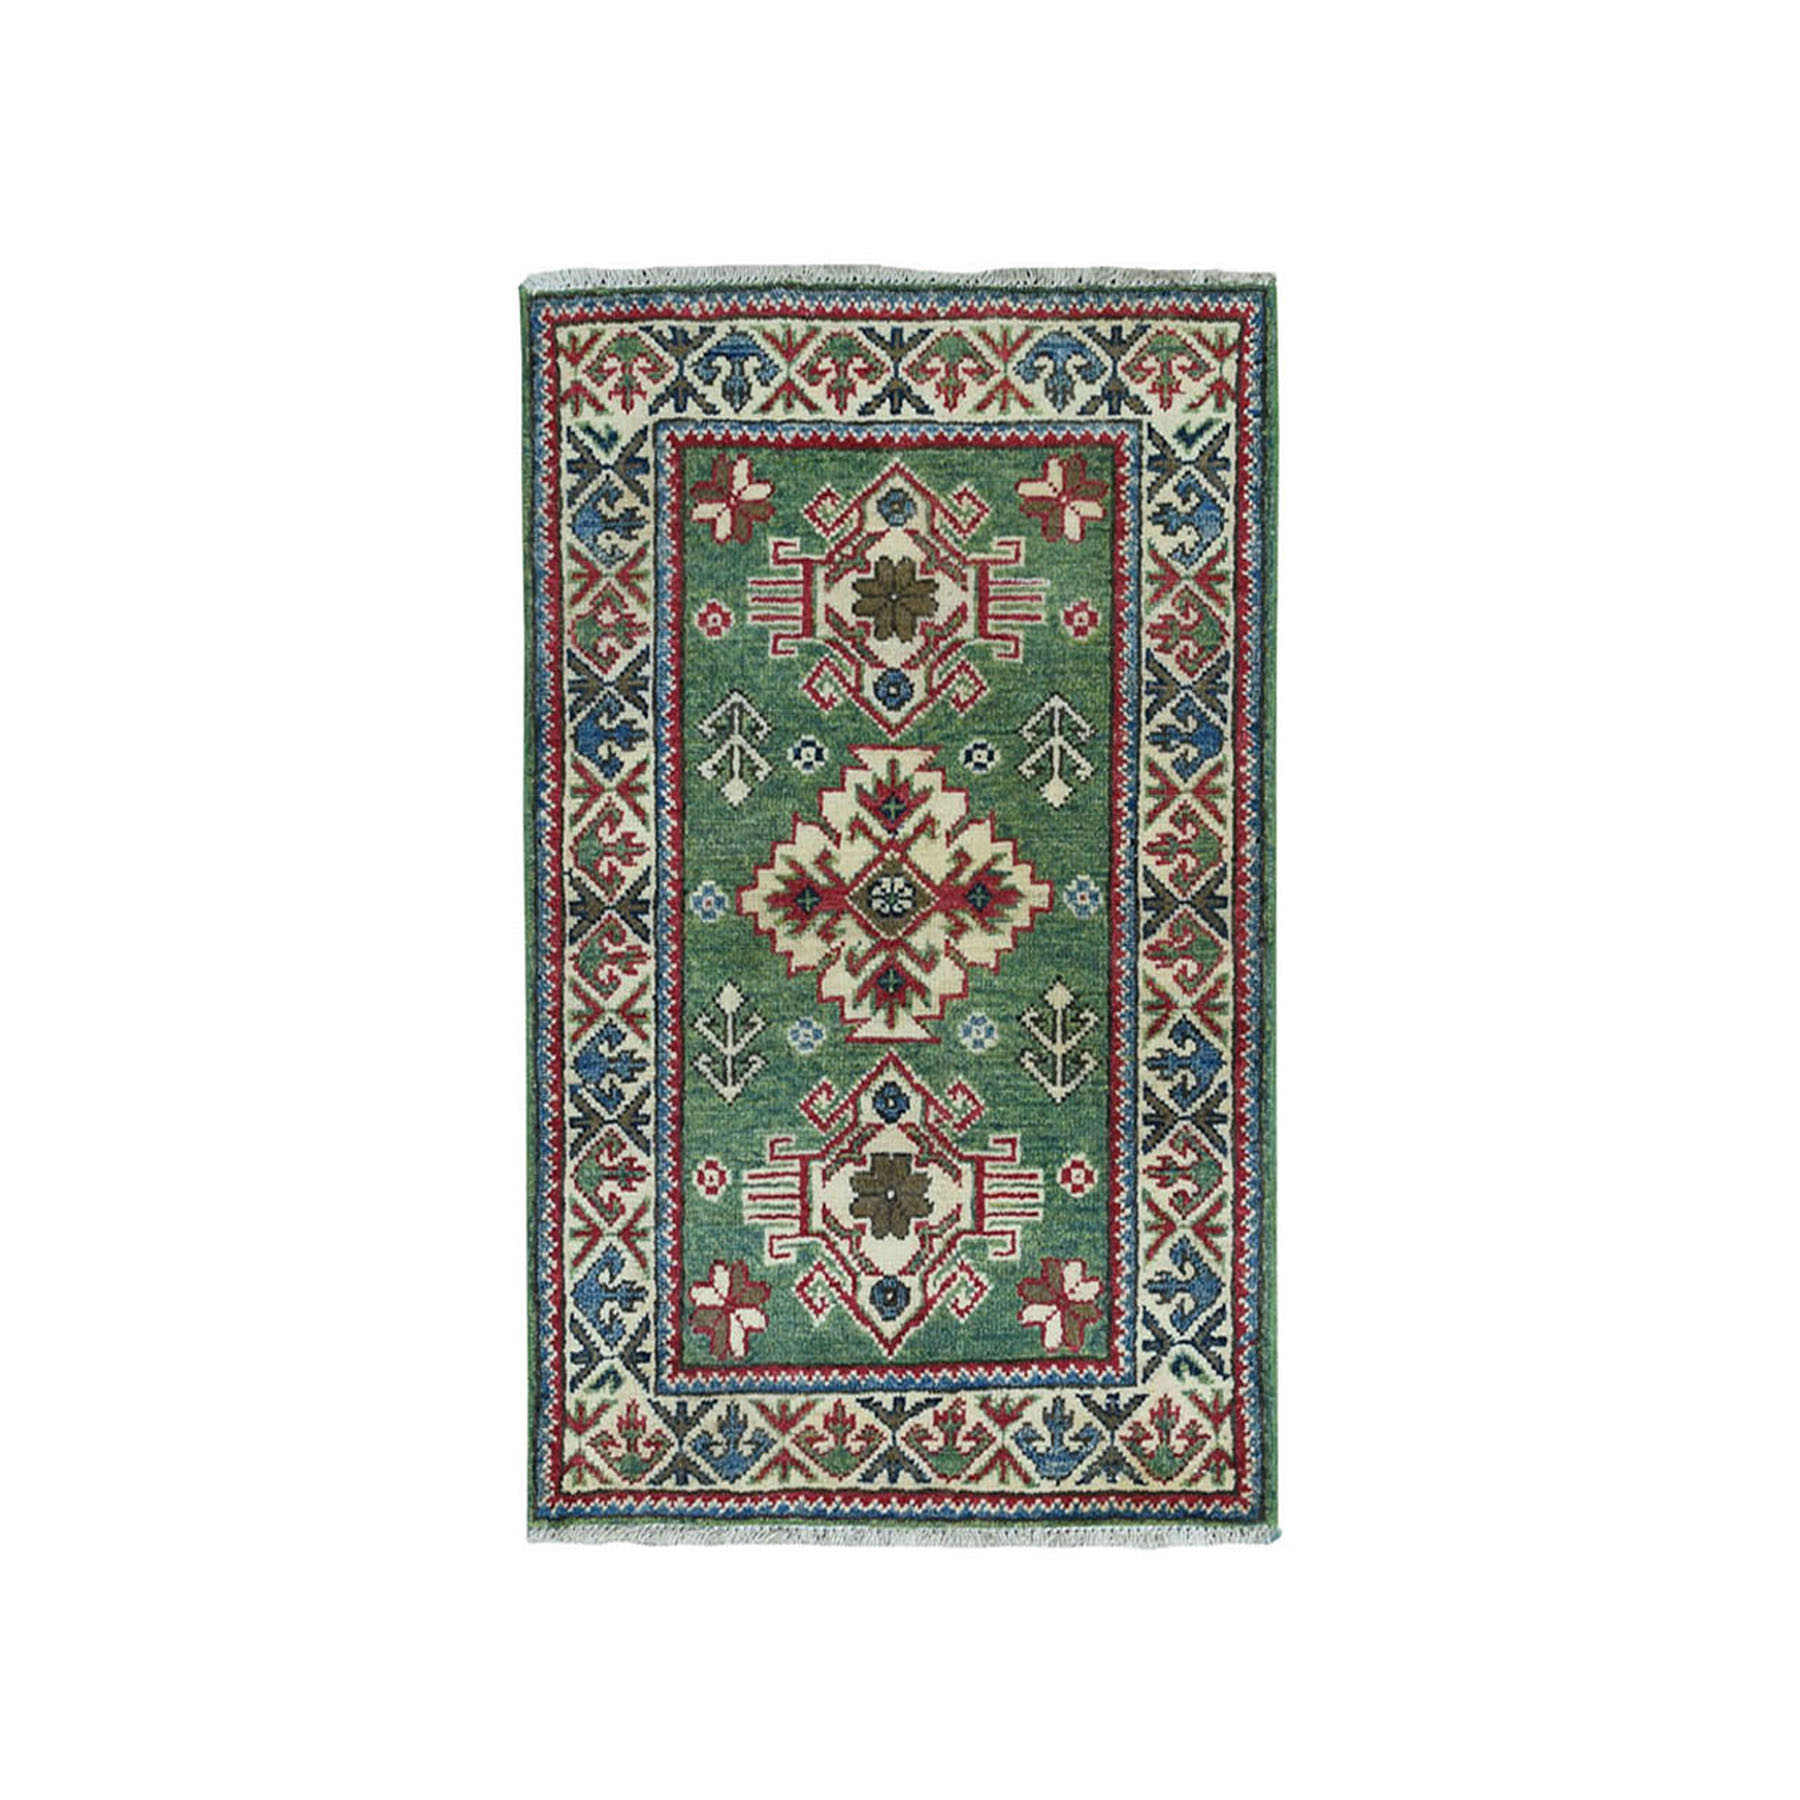 2'X3' Green Kazak Geometric Design Pure Wool Hand-Knotted Oriental Rug moae0799